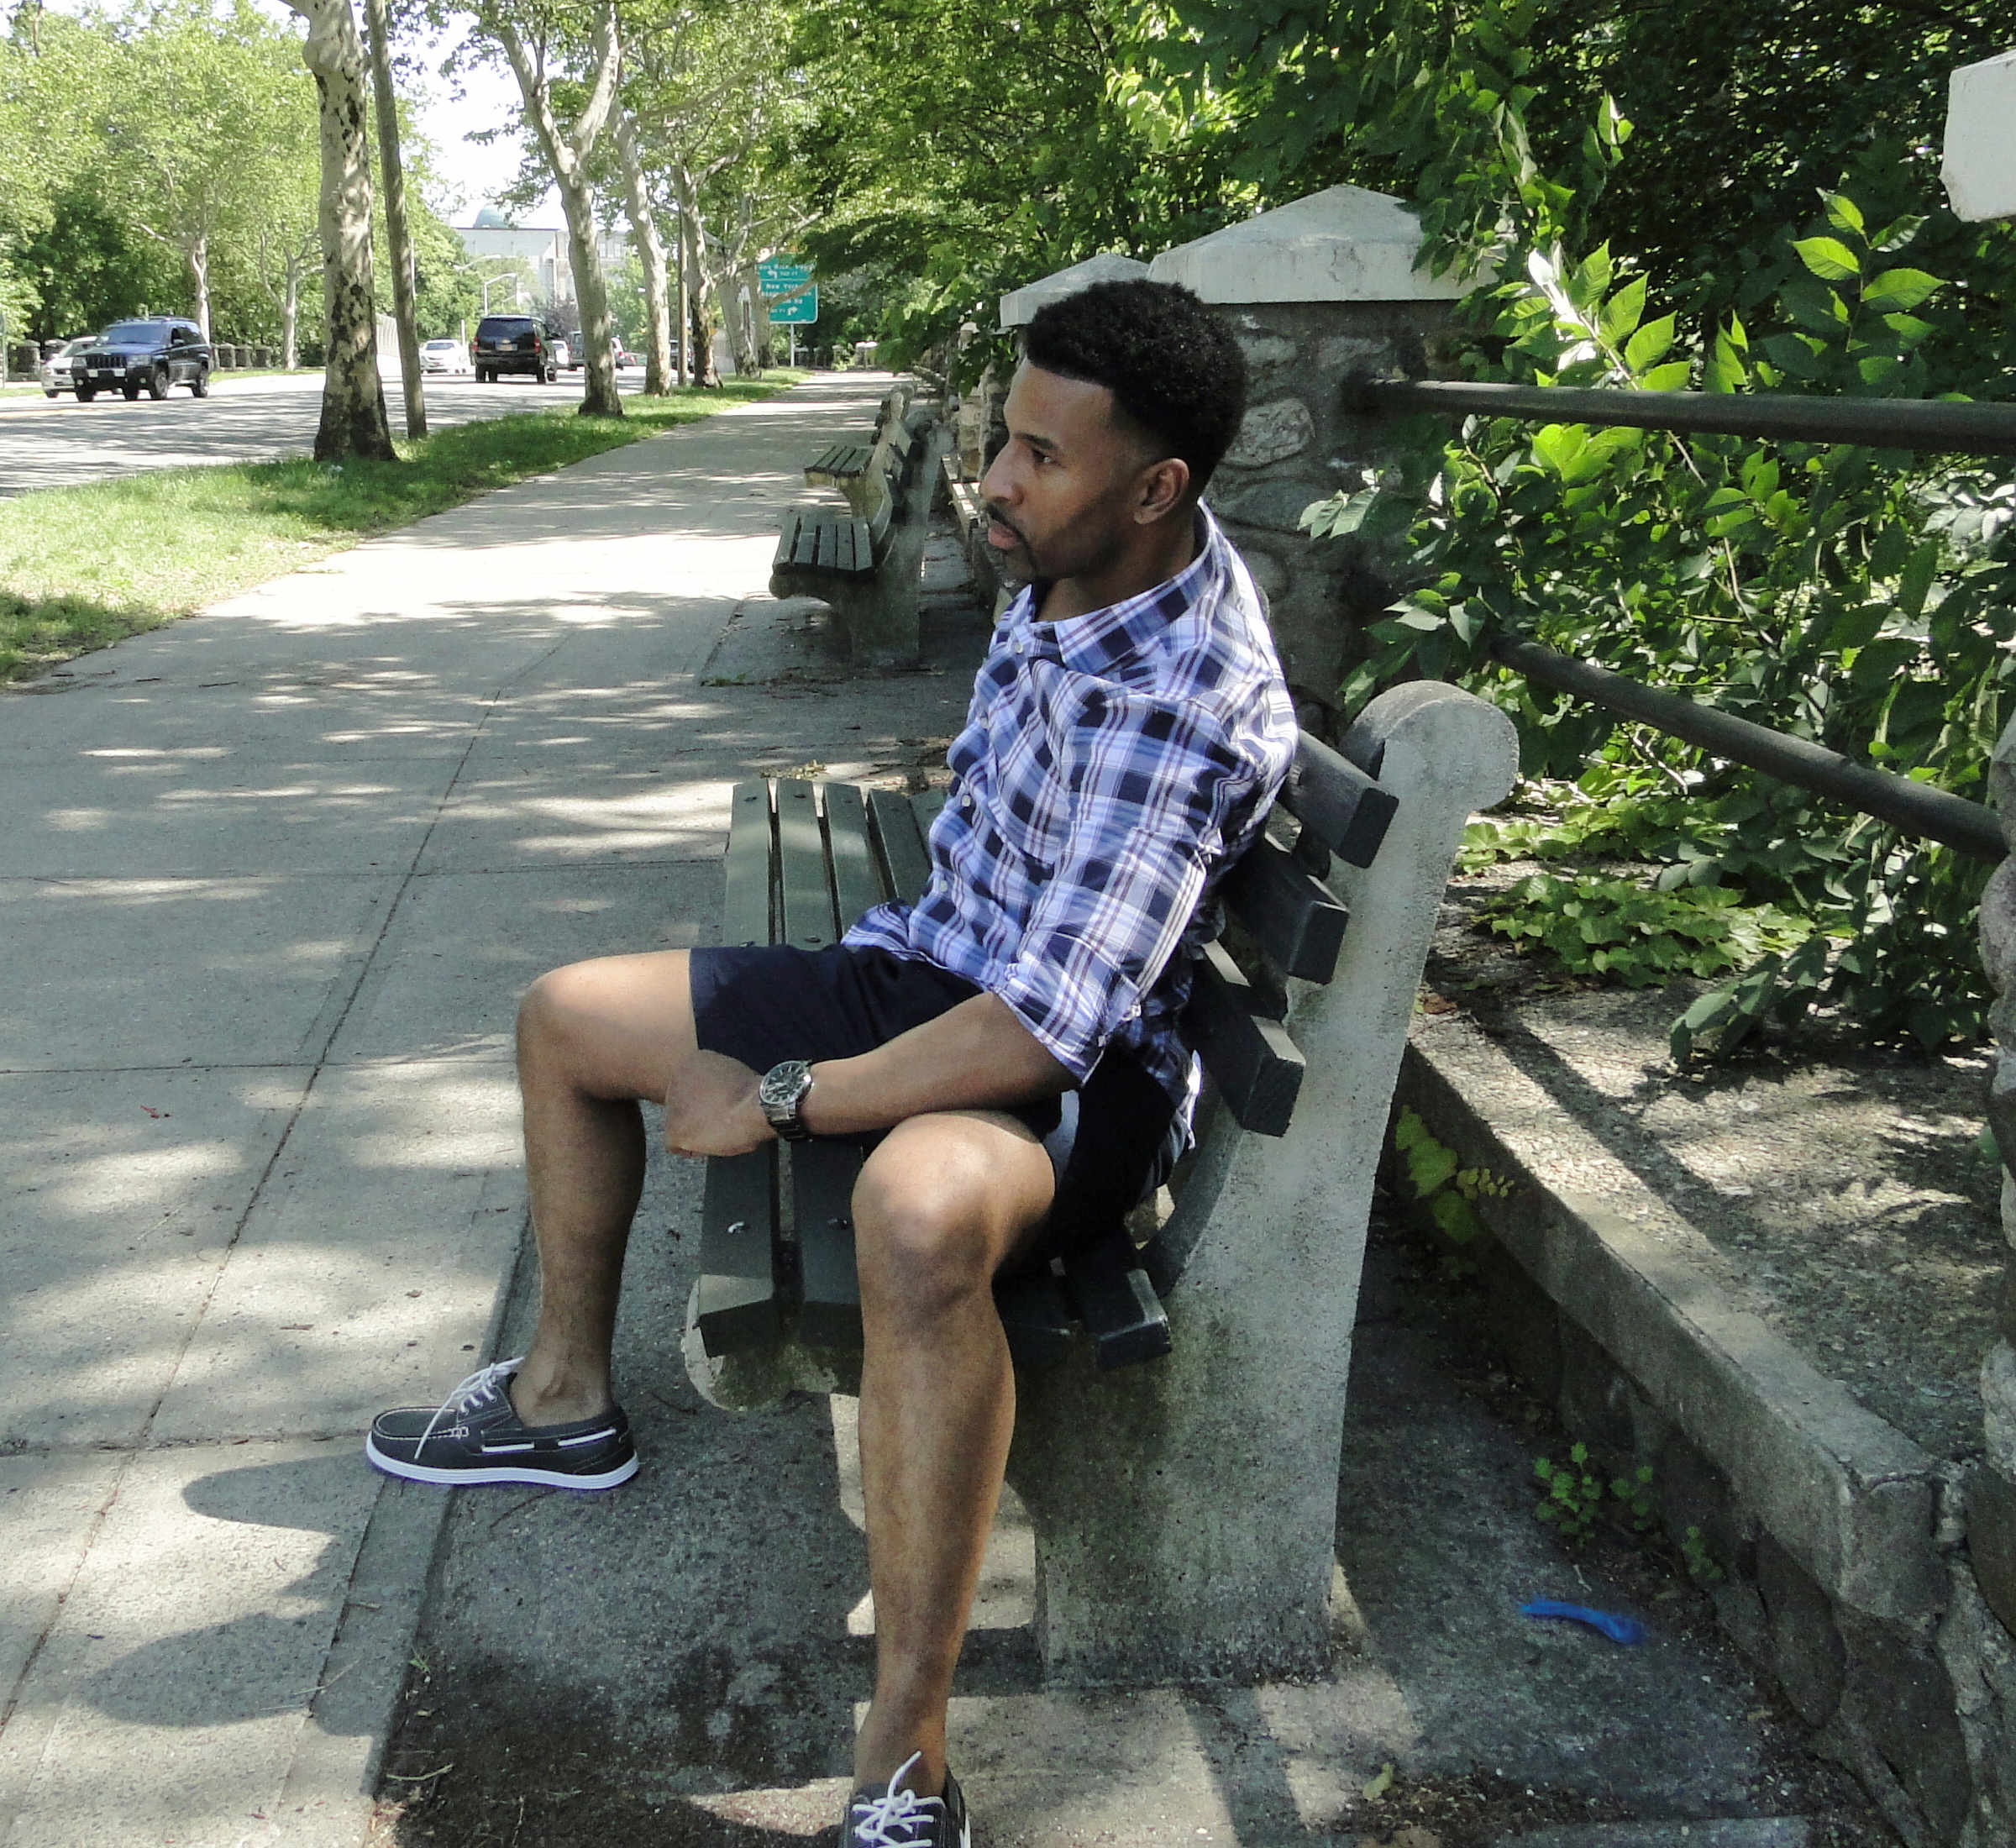 Summer Style For Short Men On A Budget: Express For Men Plaid And Chinos | ShortGuyCentral